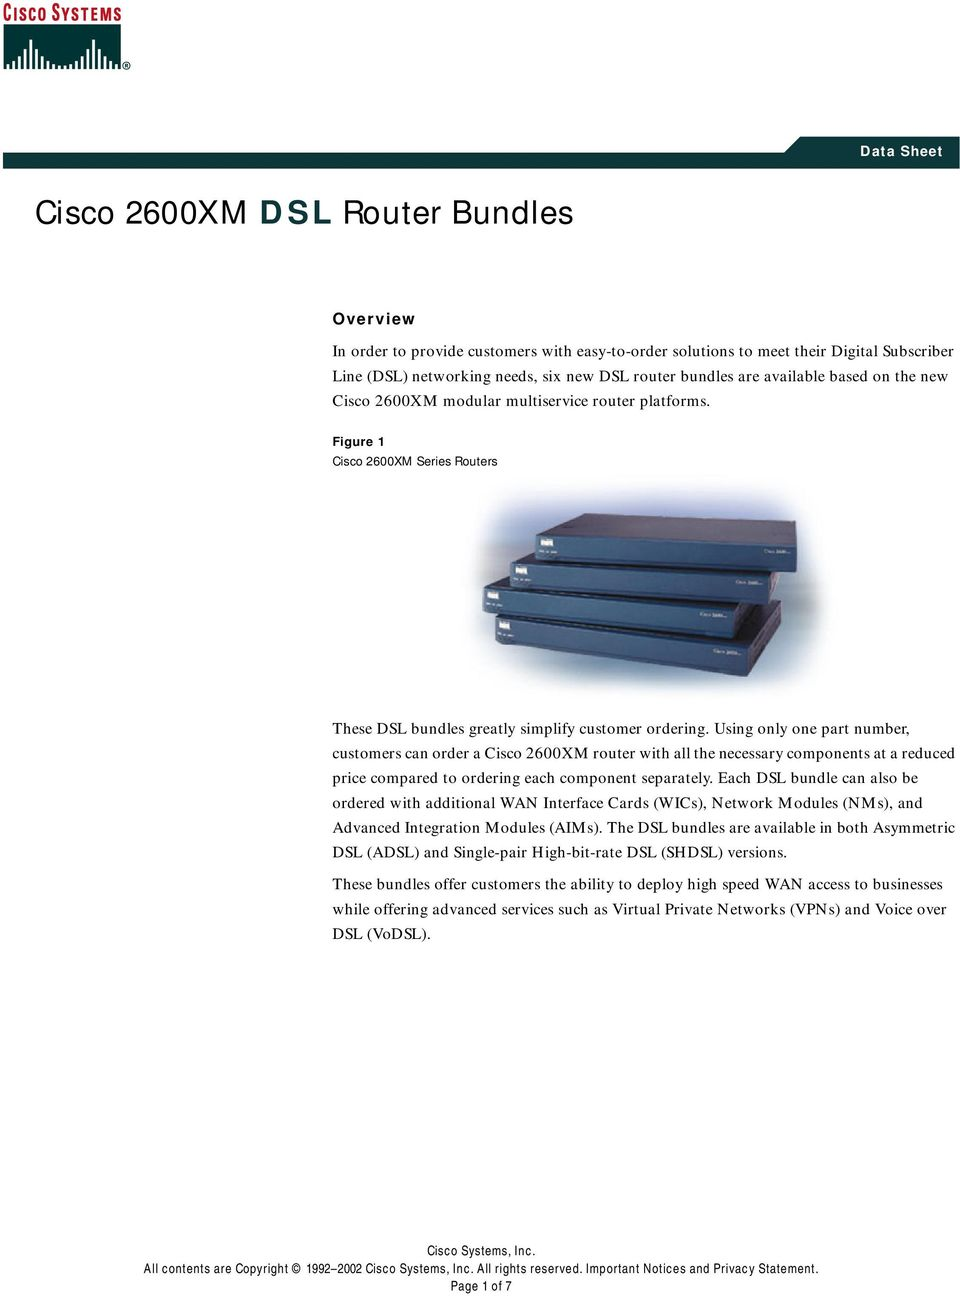 Using only one part number, customers can order a Cisco 2600XM router with all the necessary components at a reduced price compared to ordering each component separately.